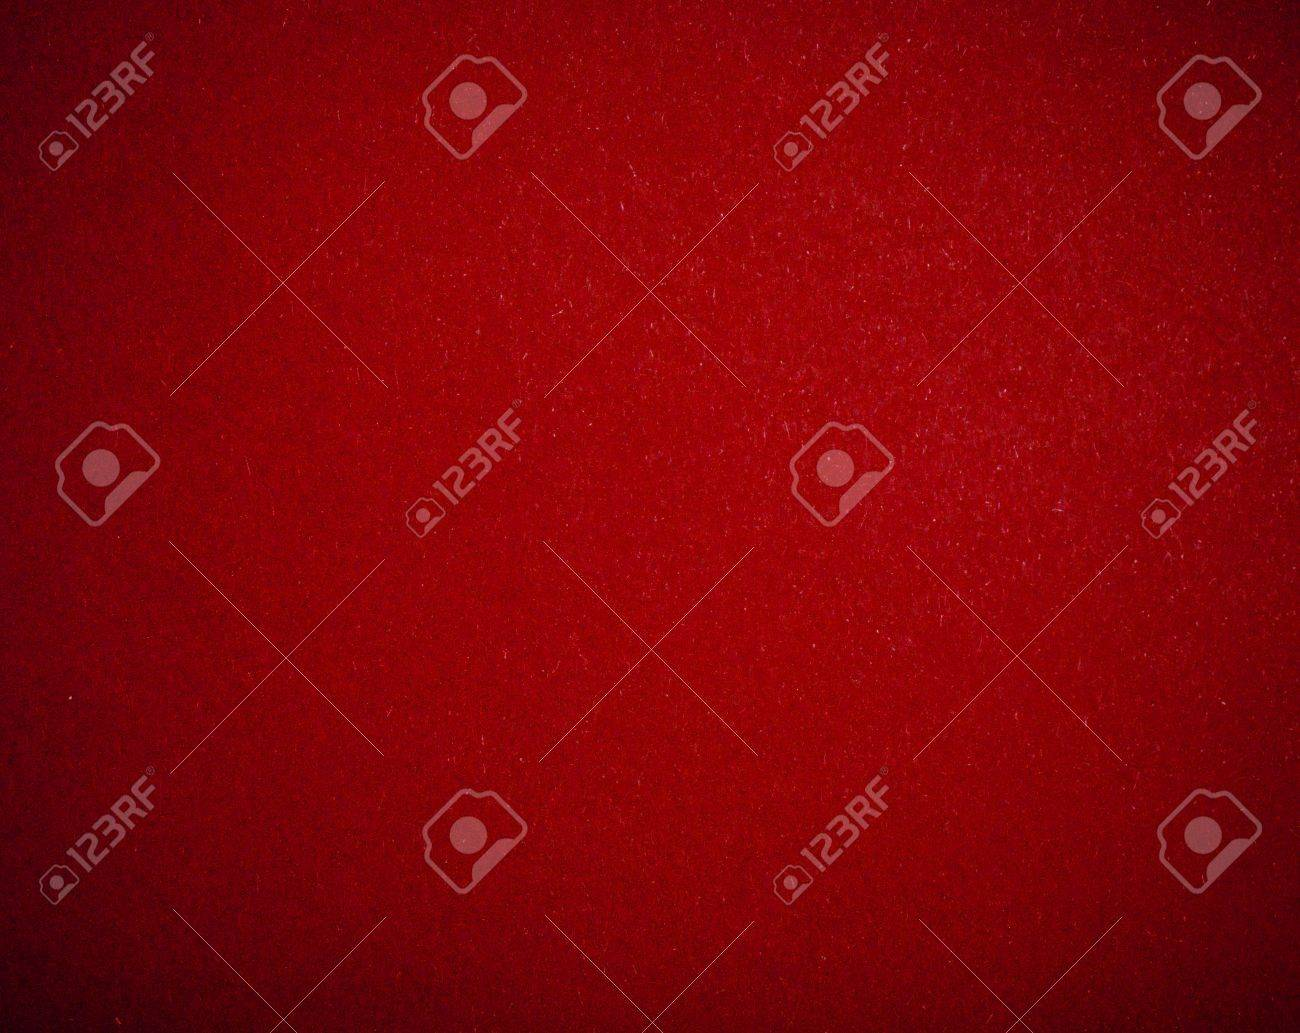 Poker table background - Poker Table Felt Background In Red Color Stock Photo 18862418